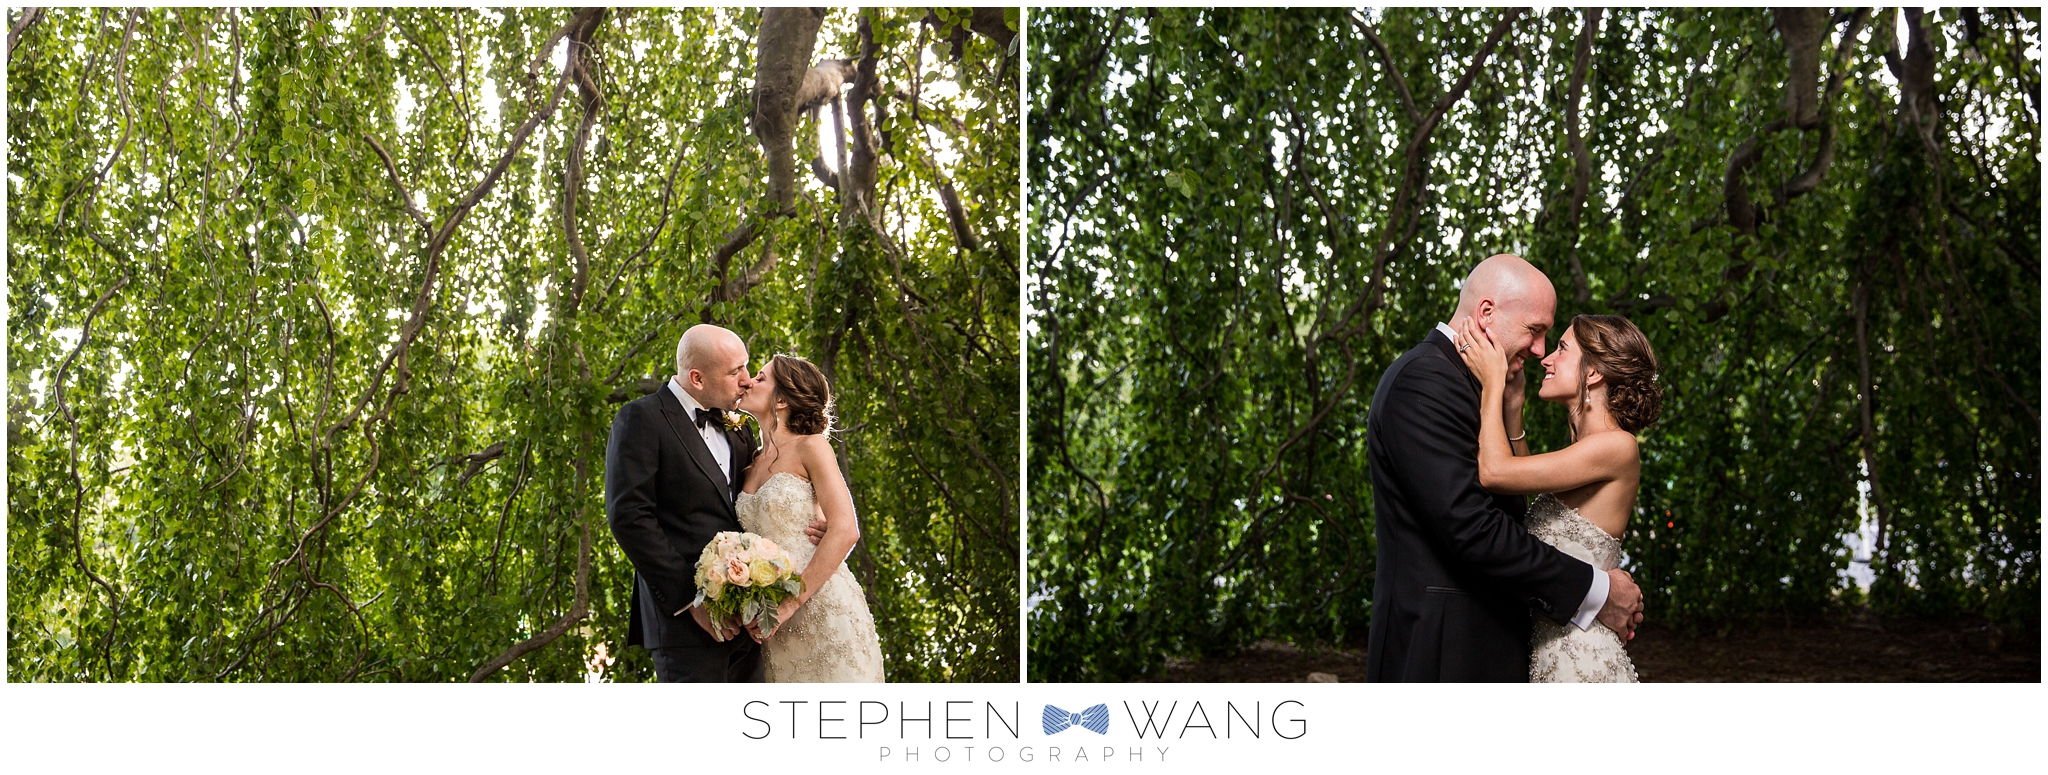 Stephen Wang Photography wedding photographer whitby castle wedding rye ny connecticut photographer philadlephia photographer pennsylvania wedding photographer bride and groom00034.jpg